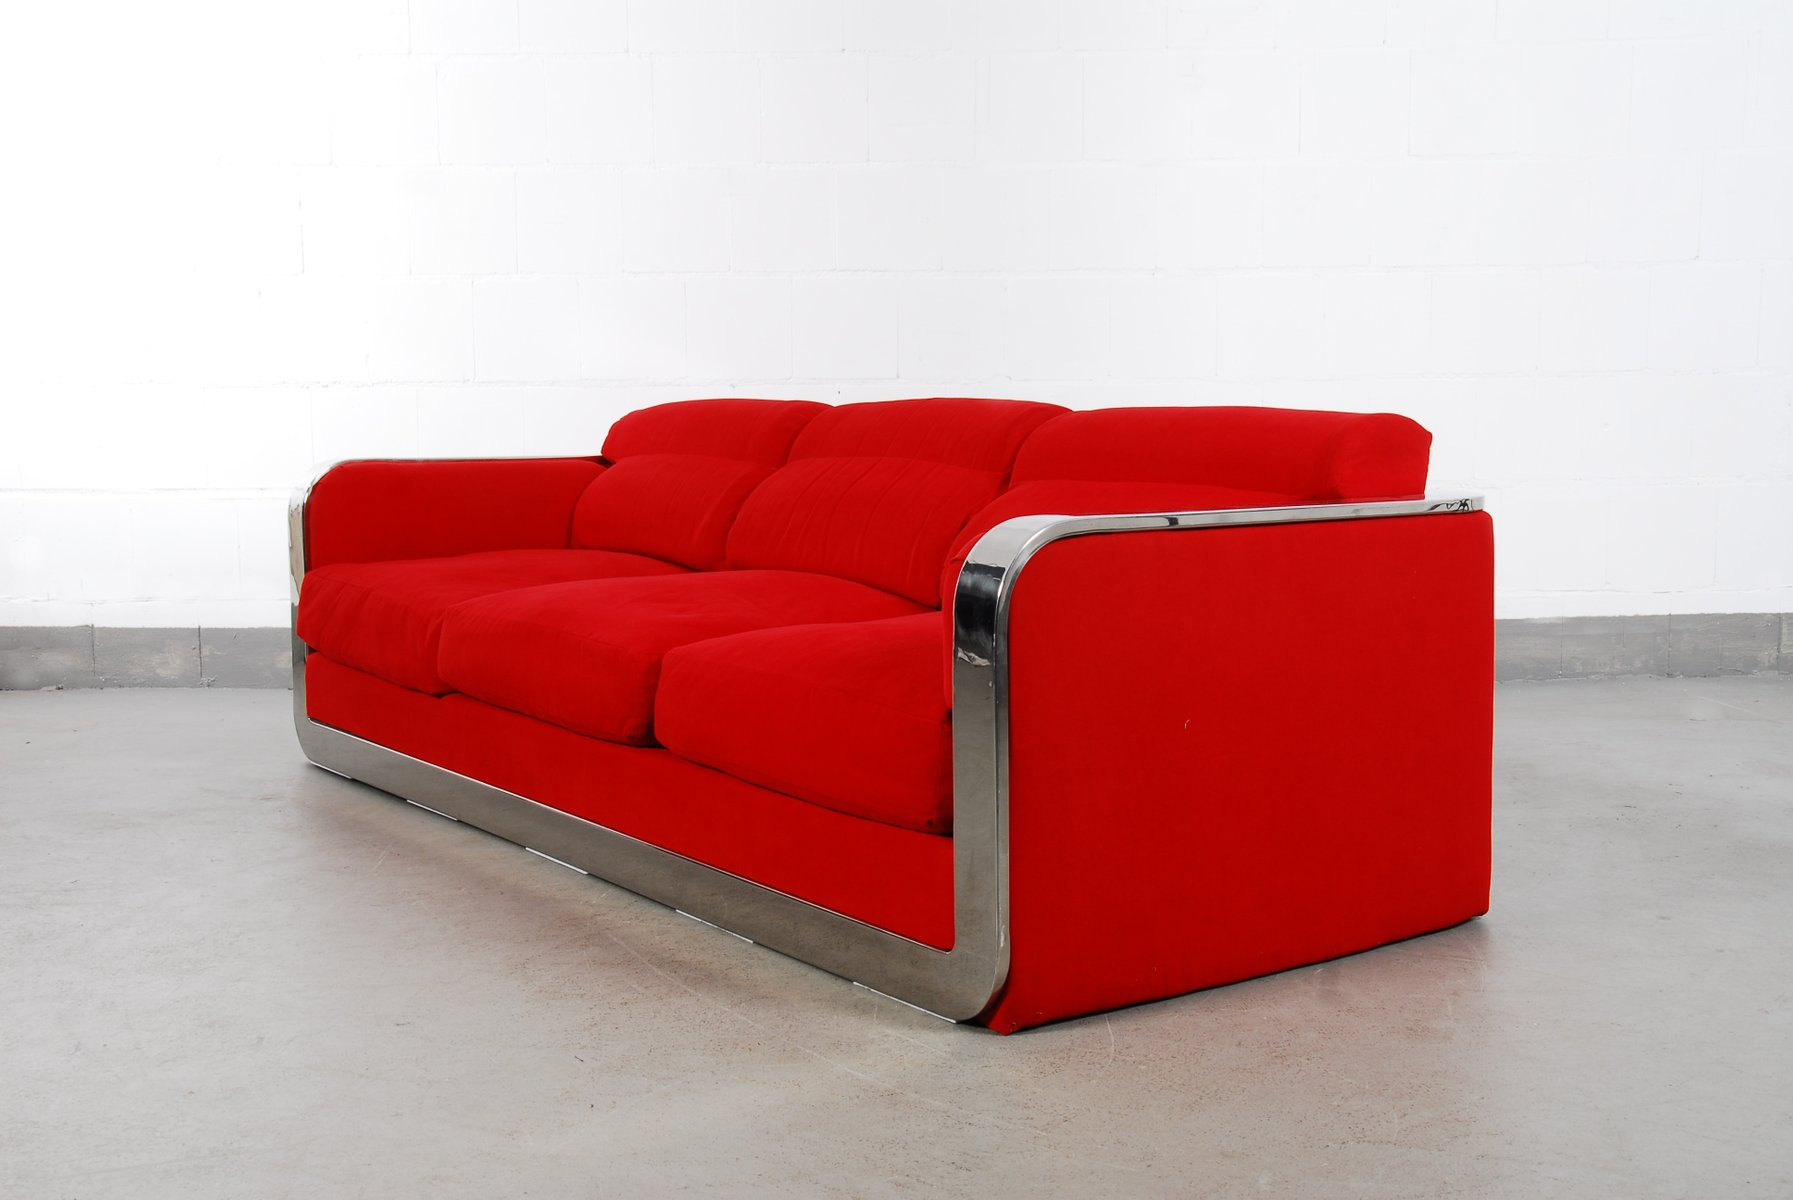 Vintage Italian Two-Seater & Three-Seater Sofa Set from Dada Industrial  Design